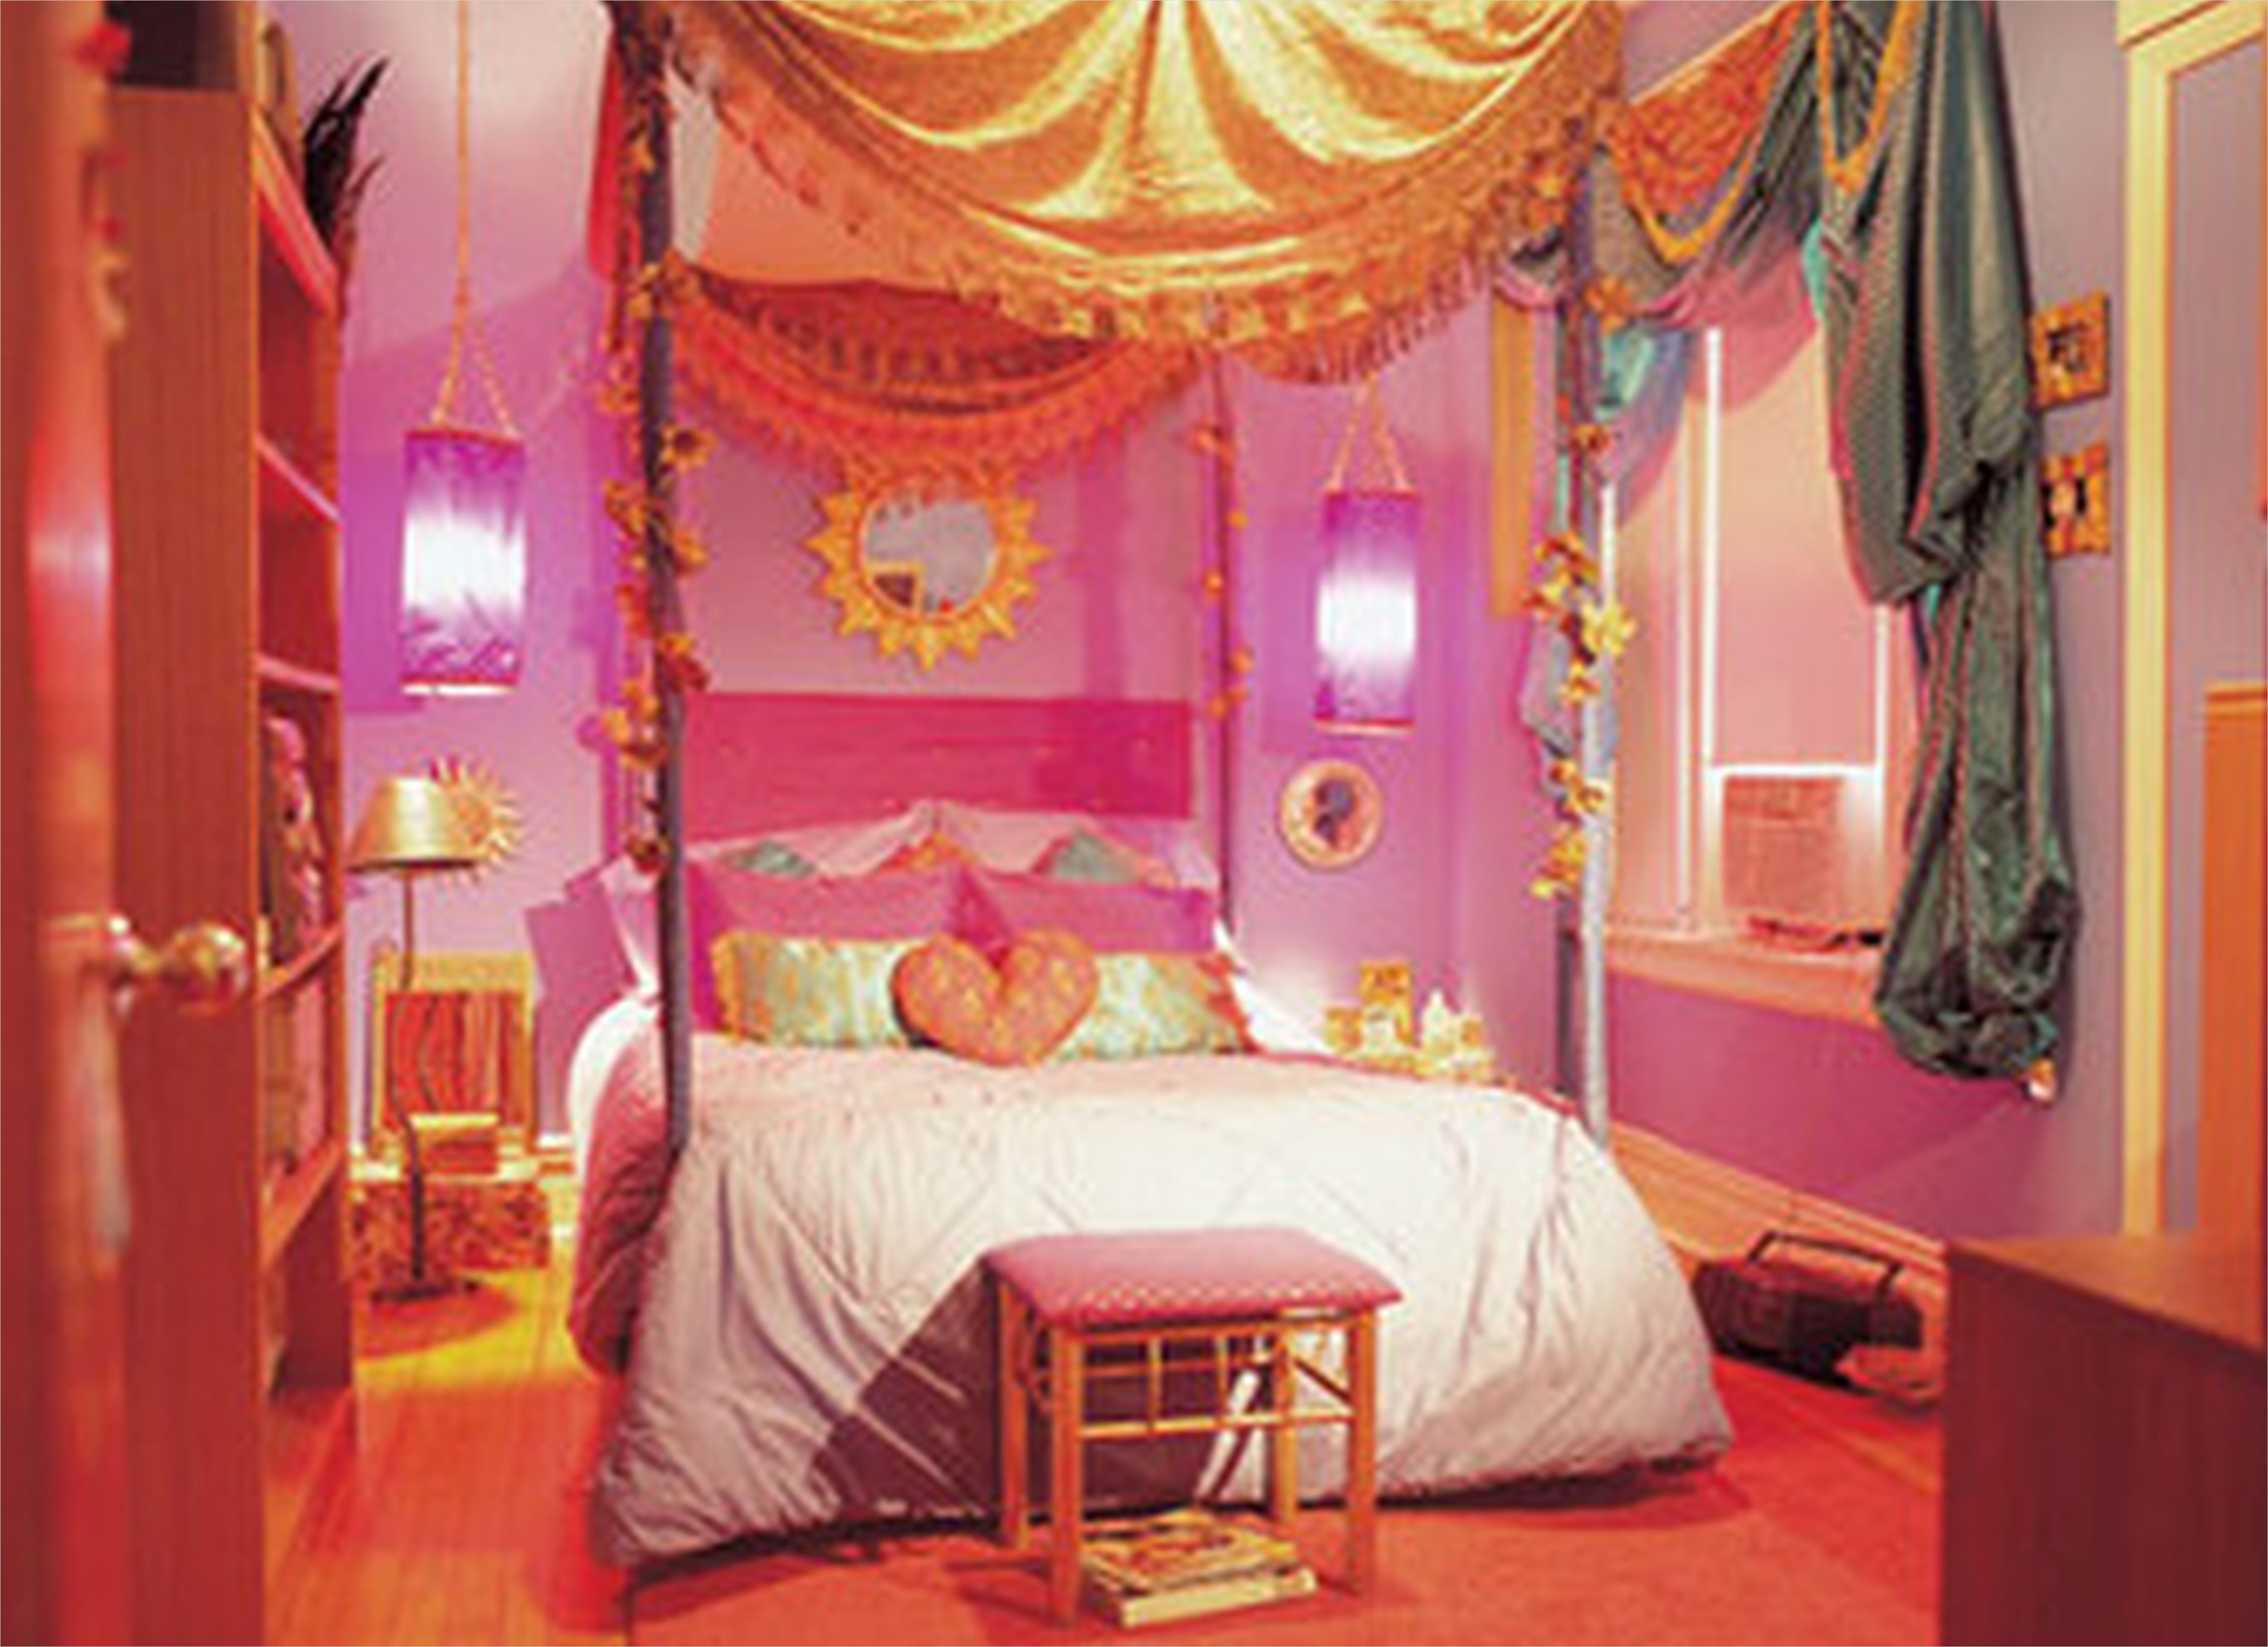 41 Amazing Dream Bedrooms for Teenage Girls 46 Dream Bedrooms for Teenage Girls Tumblr Ideas 3